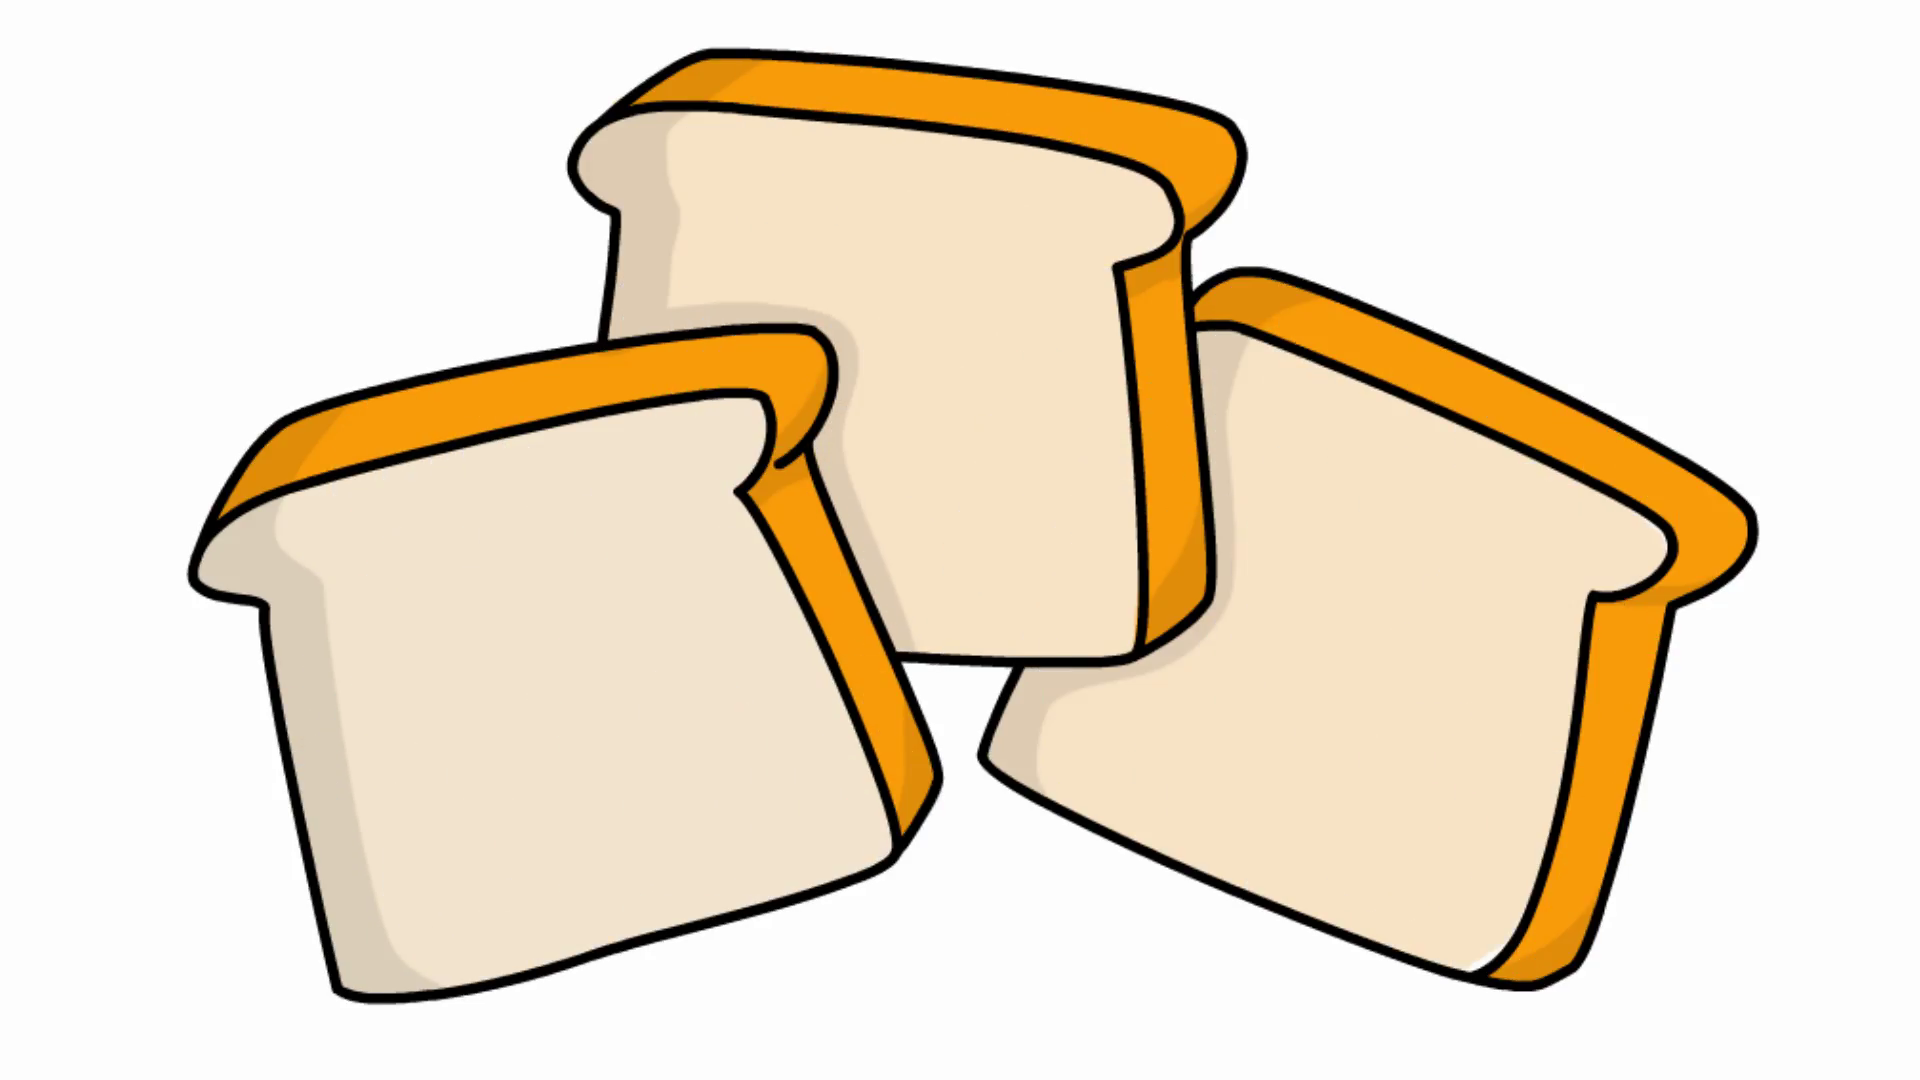 1920x1080 Bread Slice Sketch Illustration Hand Drawn Animation Transparent